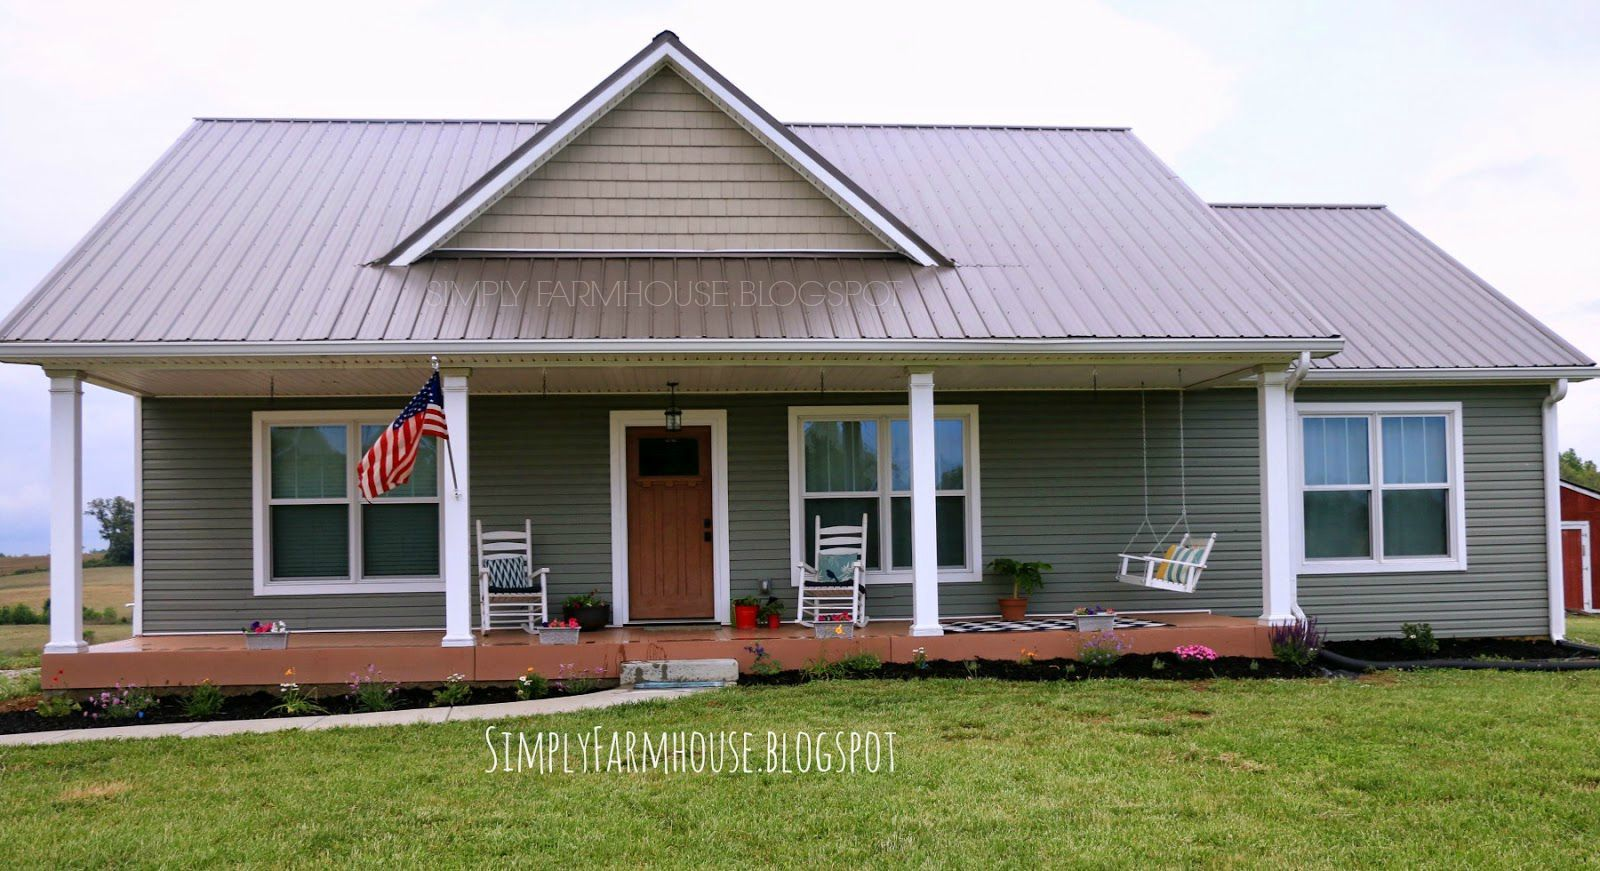 simply farmhouse simply farmhouse house plan the house we simply farmhouse simply farmhouse house plan